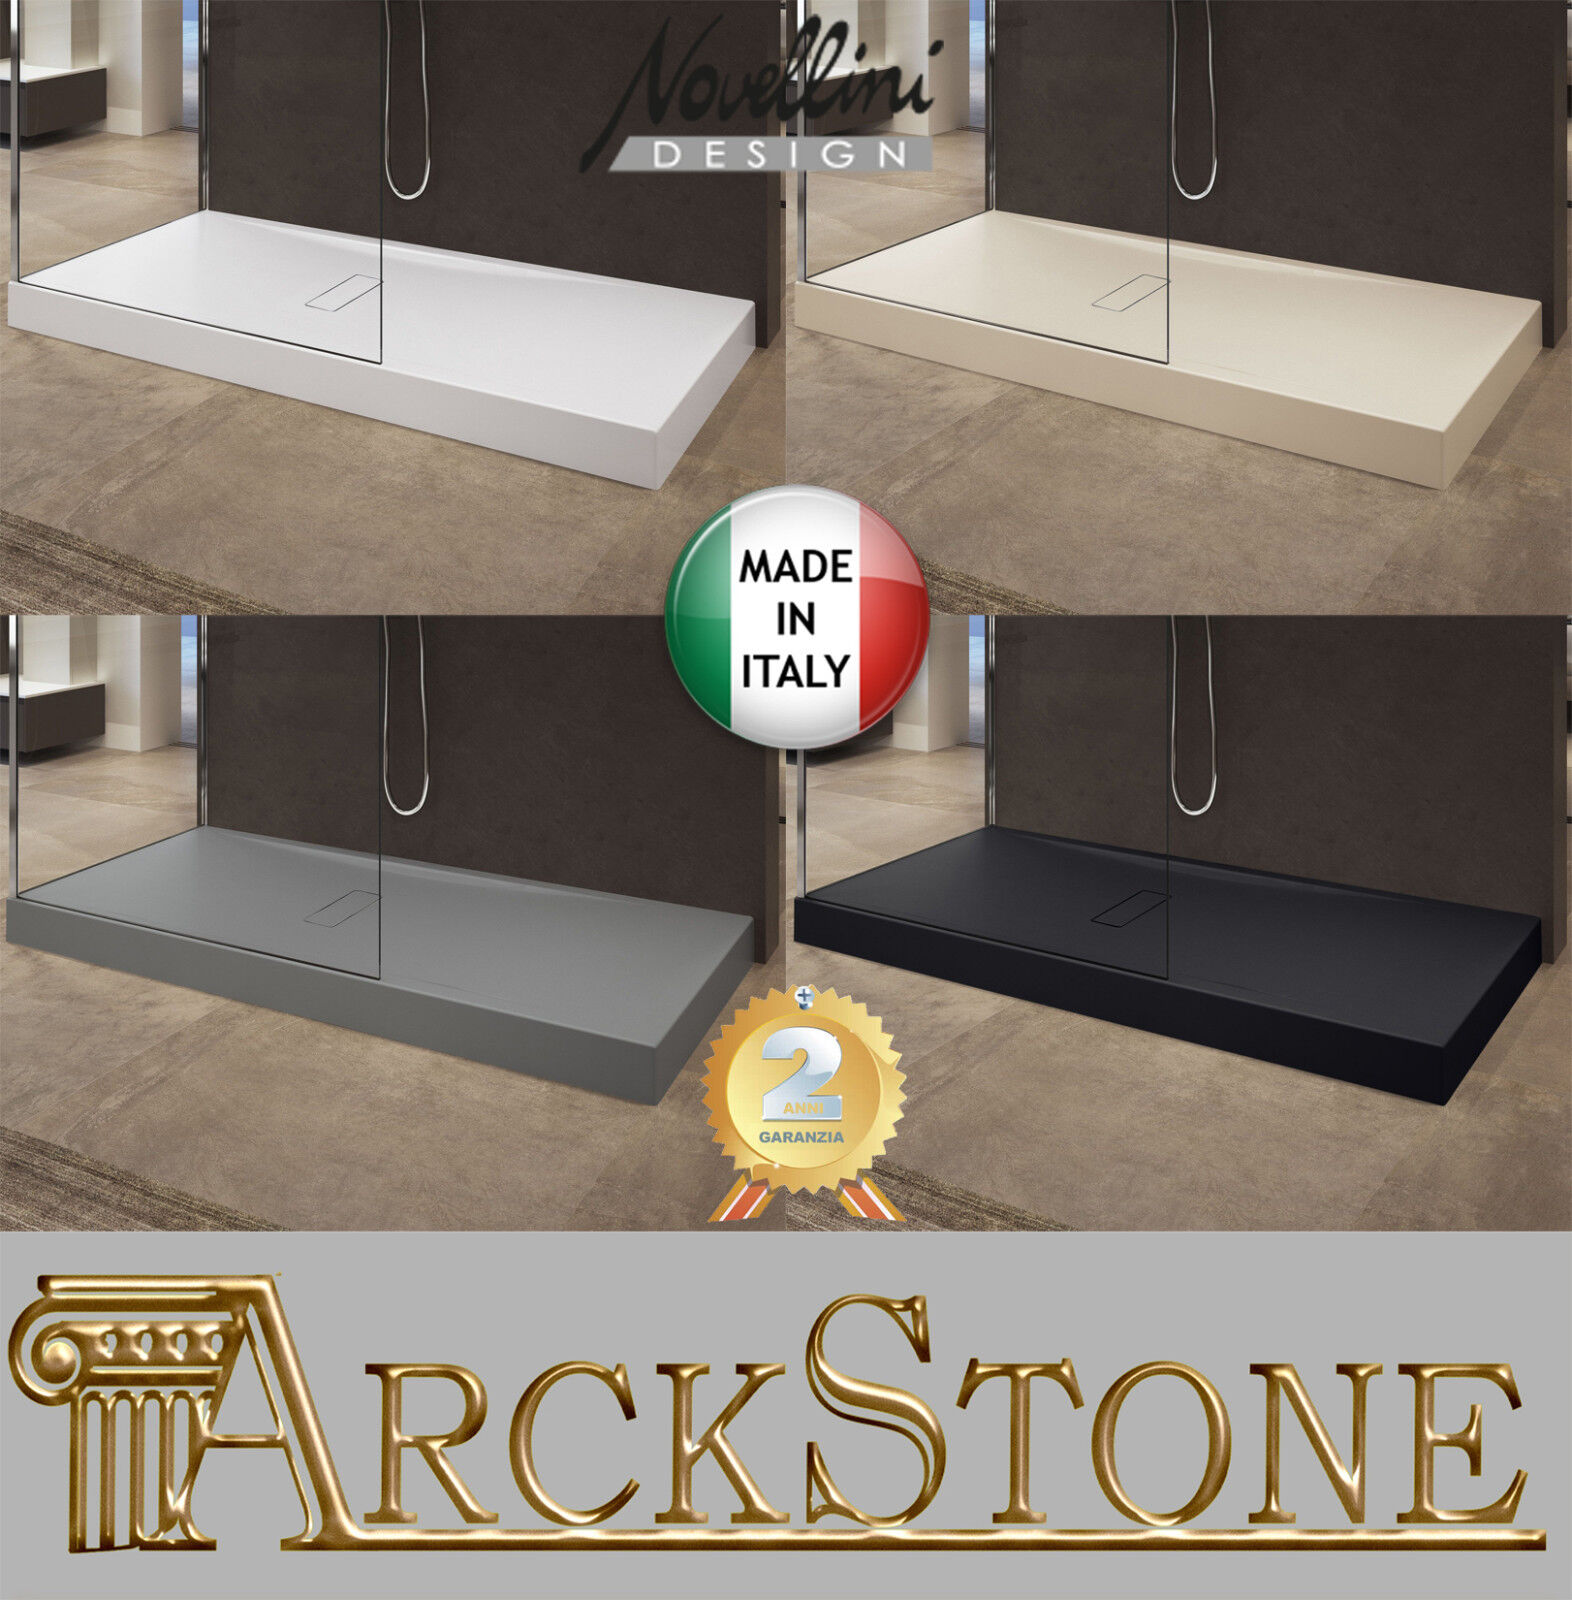 ARCKSTONE ArRouge o Box Piatto Doccia Box o Filo Ultrapiatto Slim Bagno Novellini Custom 38d45f